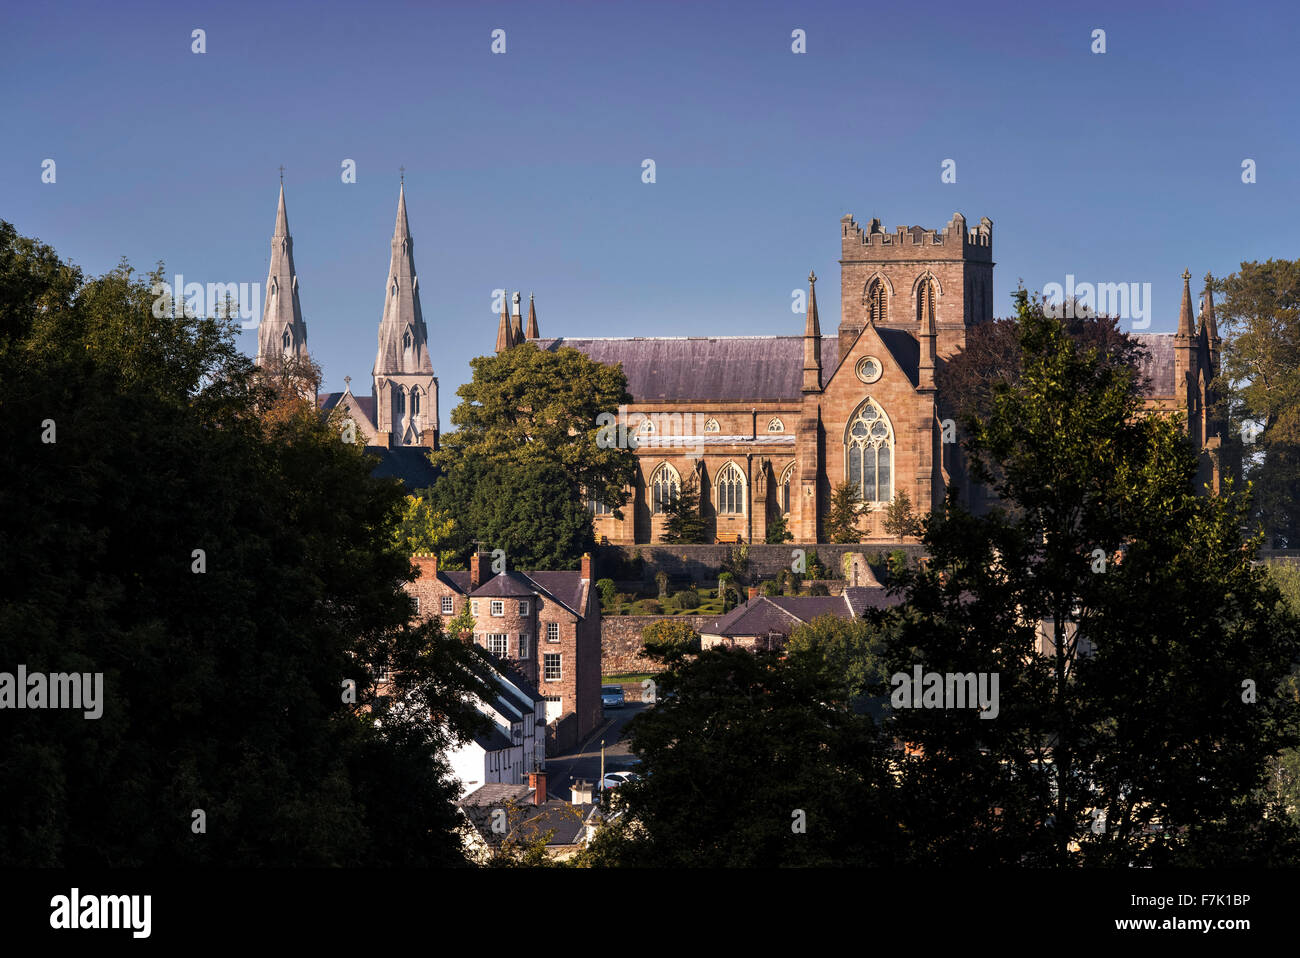 St Patrick's Cathedrals in Armagh City, Northern Ireland - Stock Image